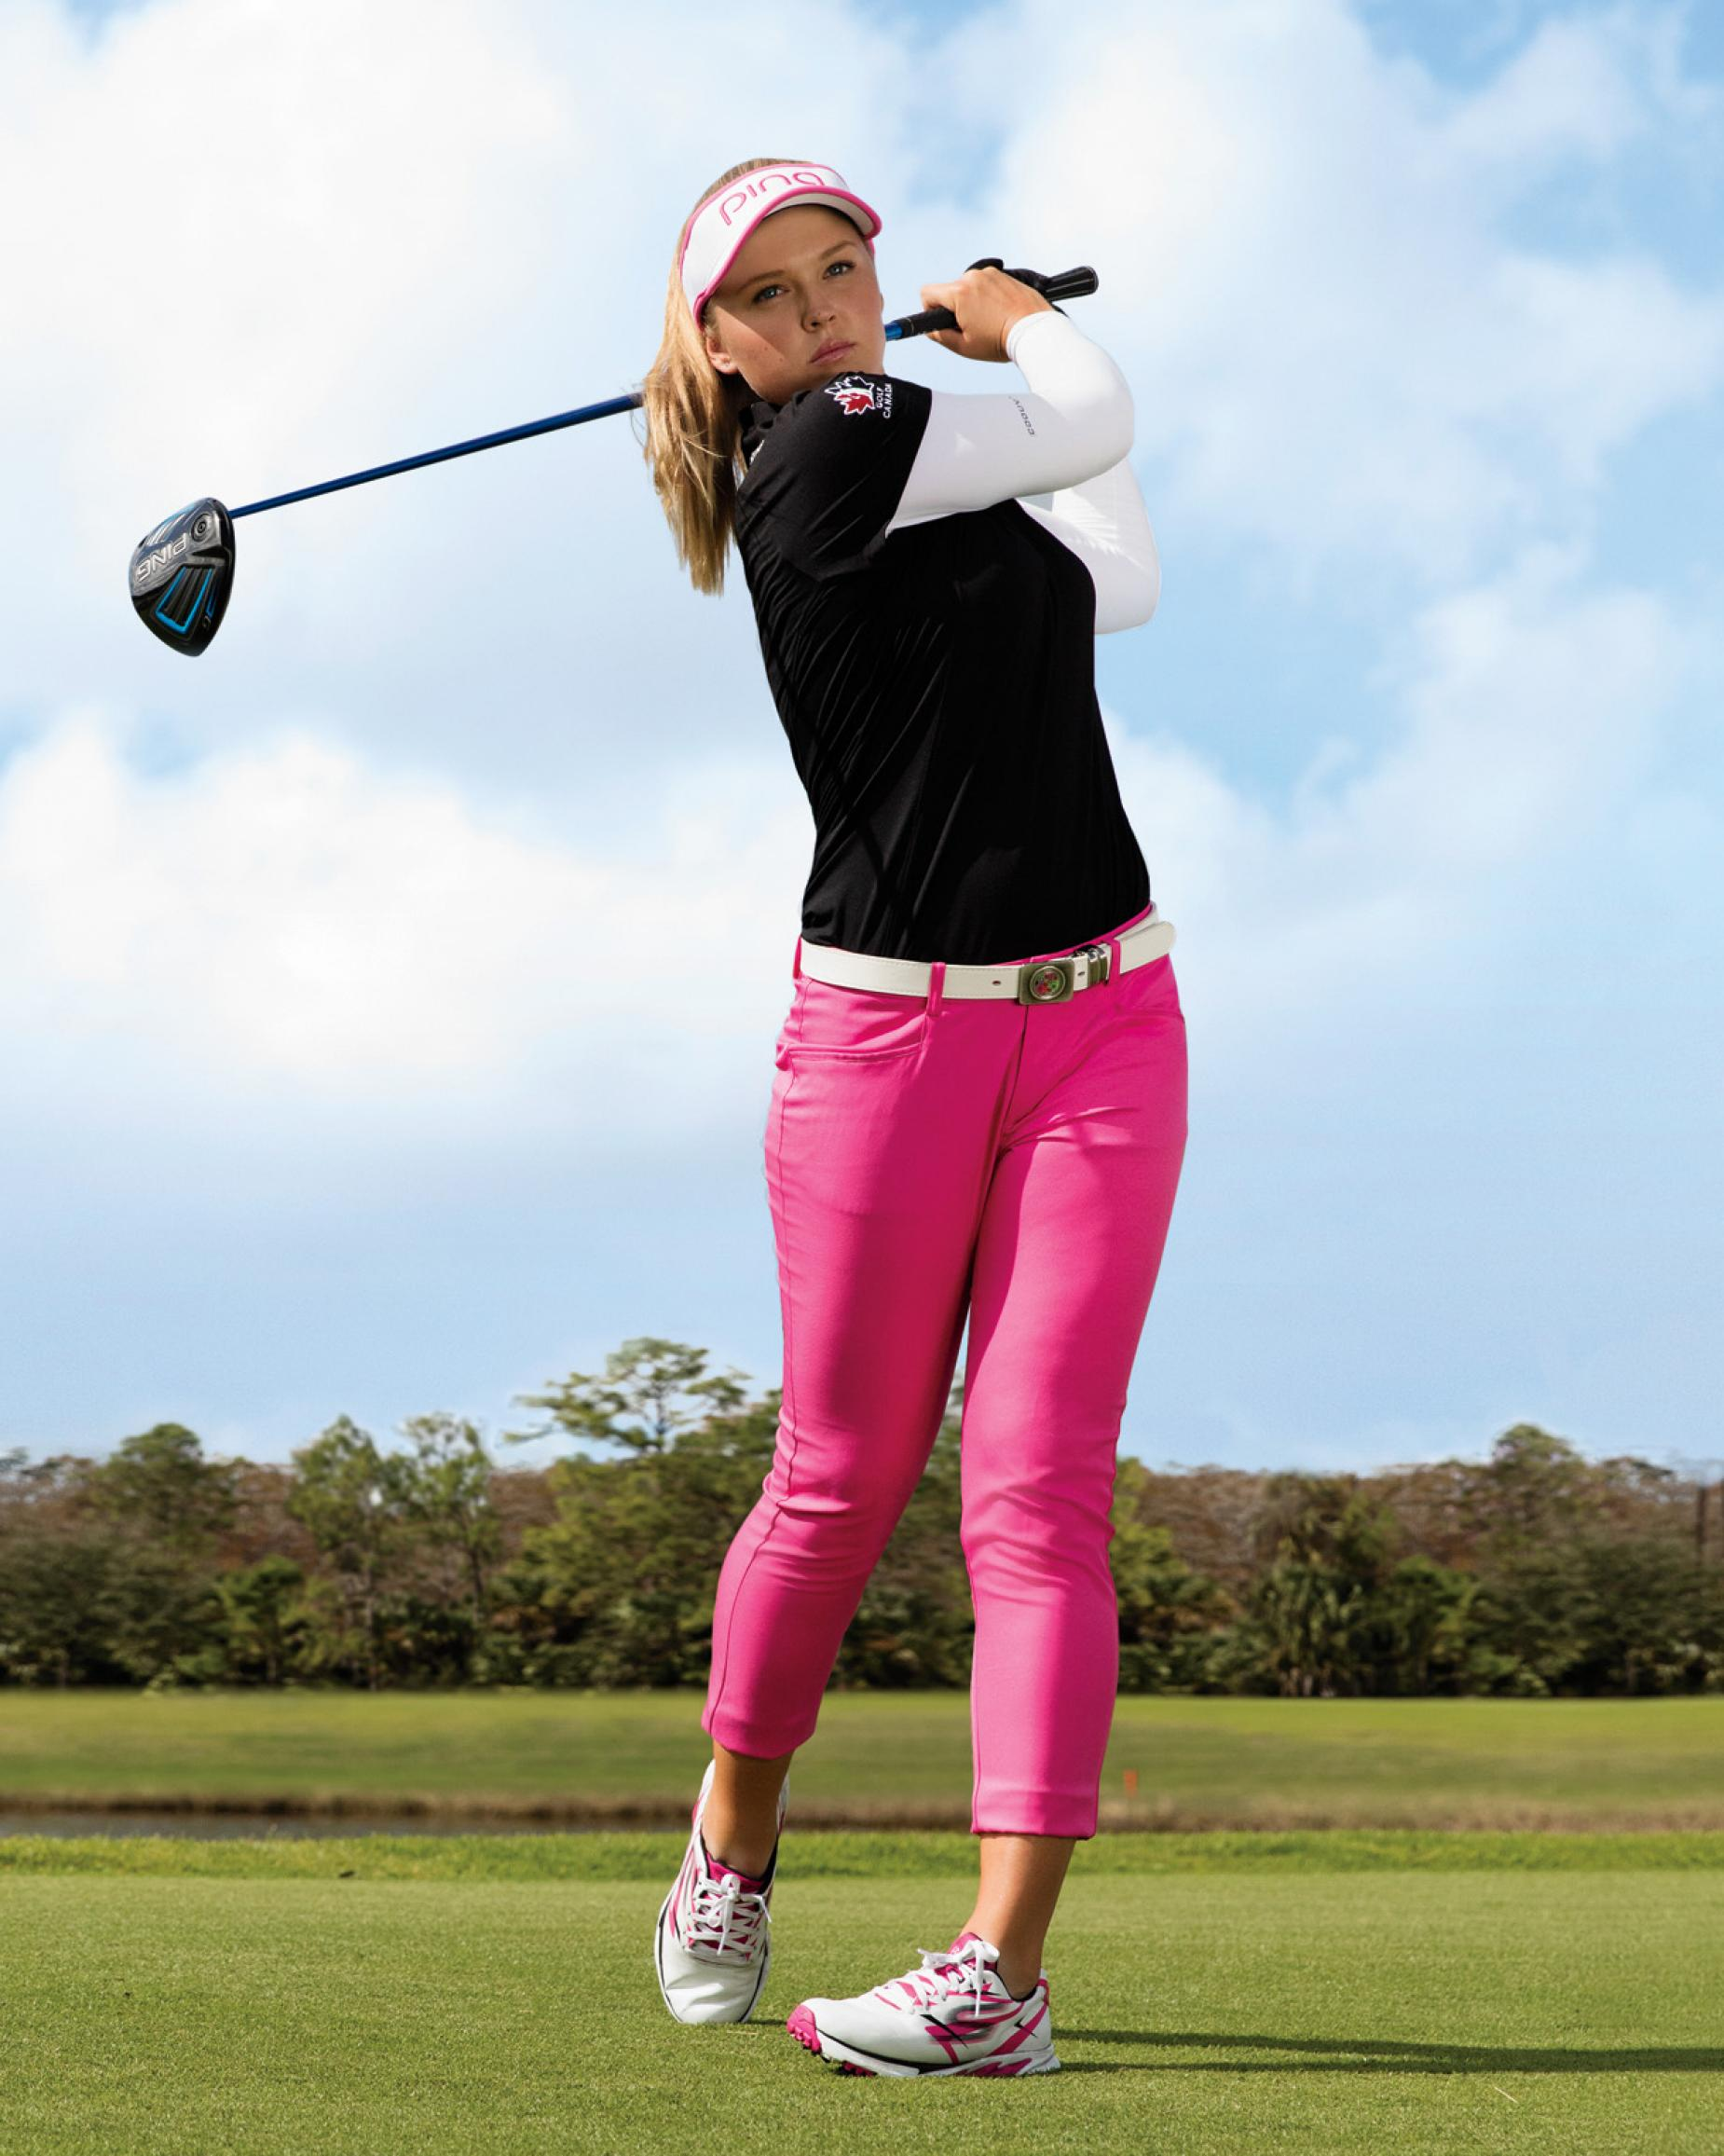 Brooke-Henderson-swing-sequence-2017.jpg